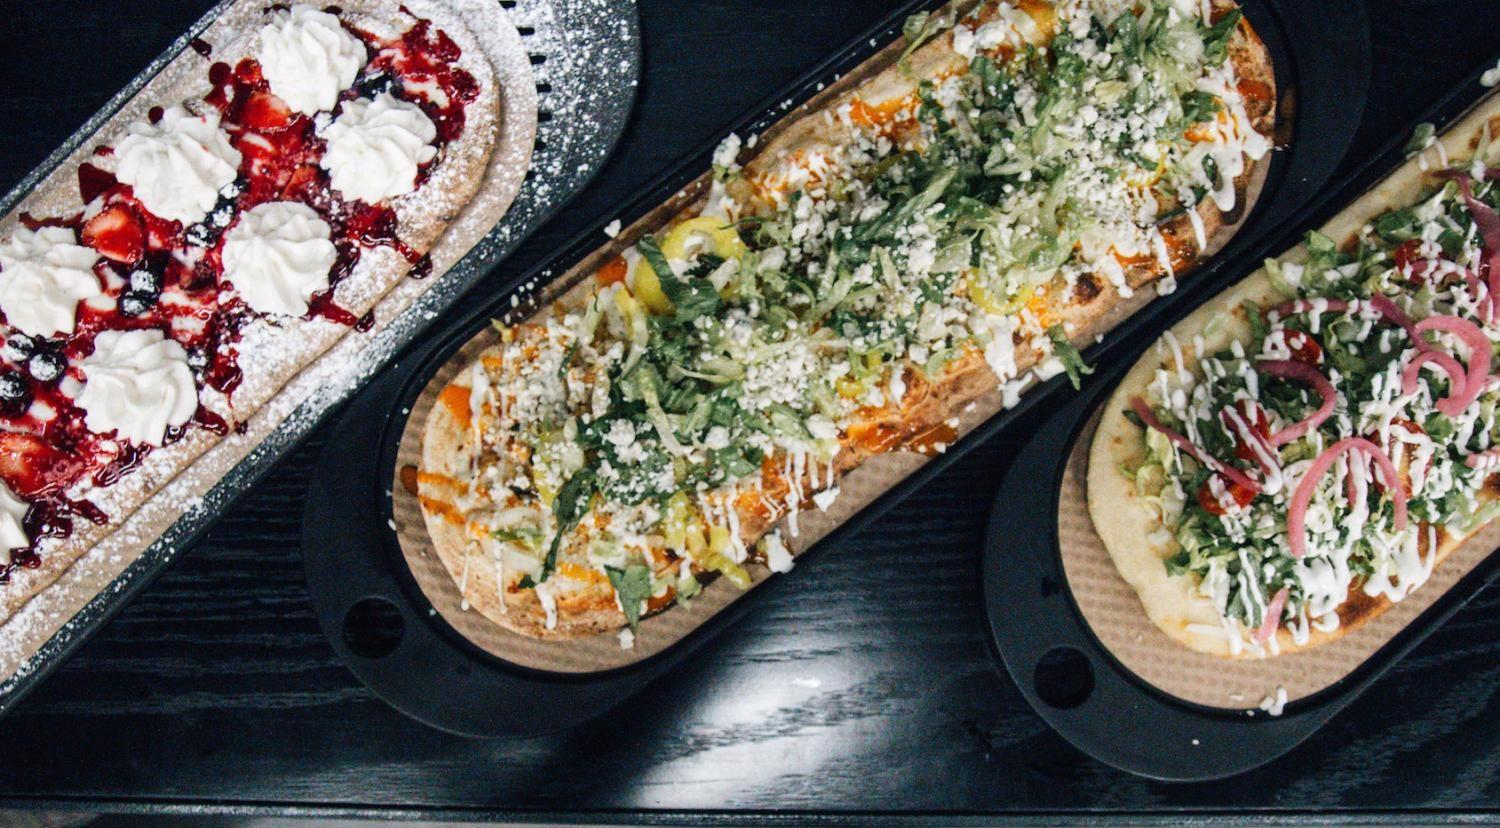 &pizza just opened on Broadway and Astor Place and offers a number of personal pizzas, as well as a create your own option at an affordable price.